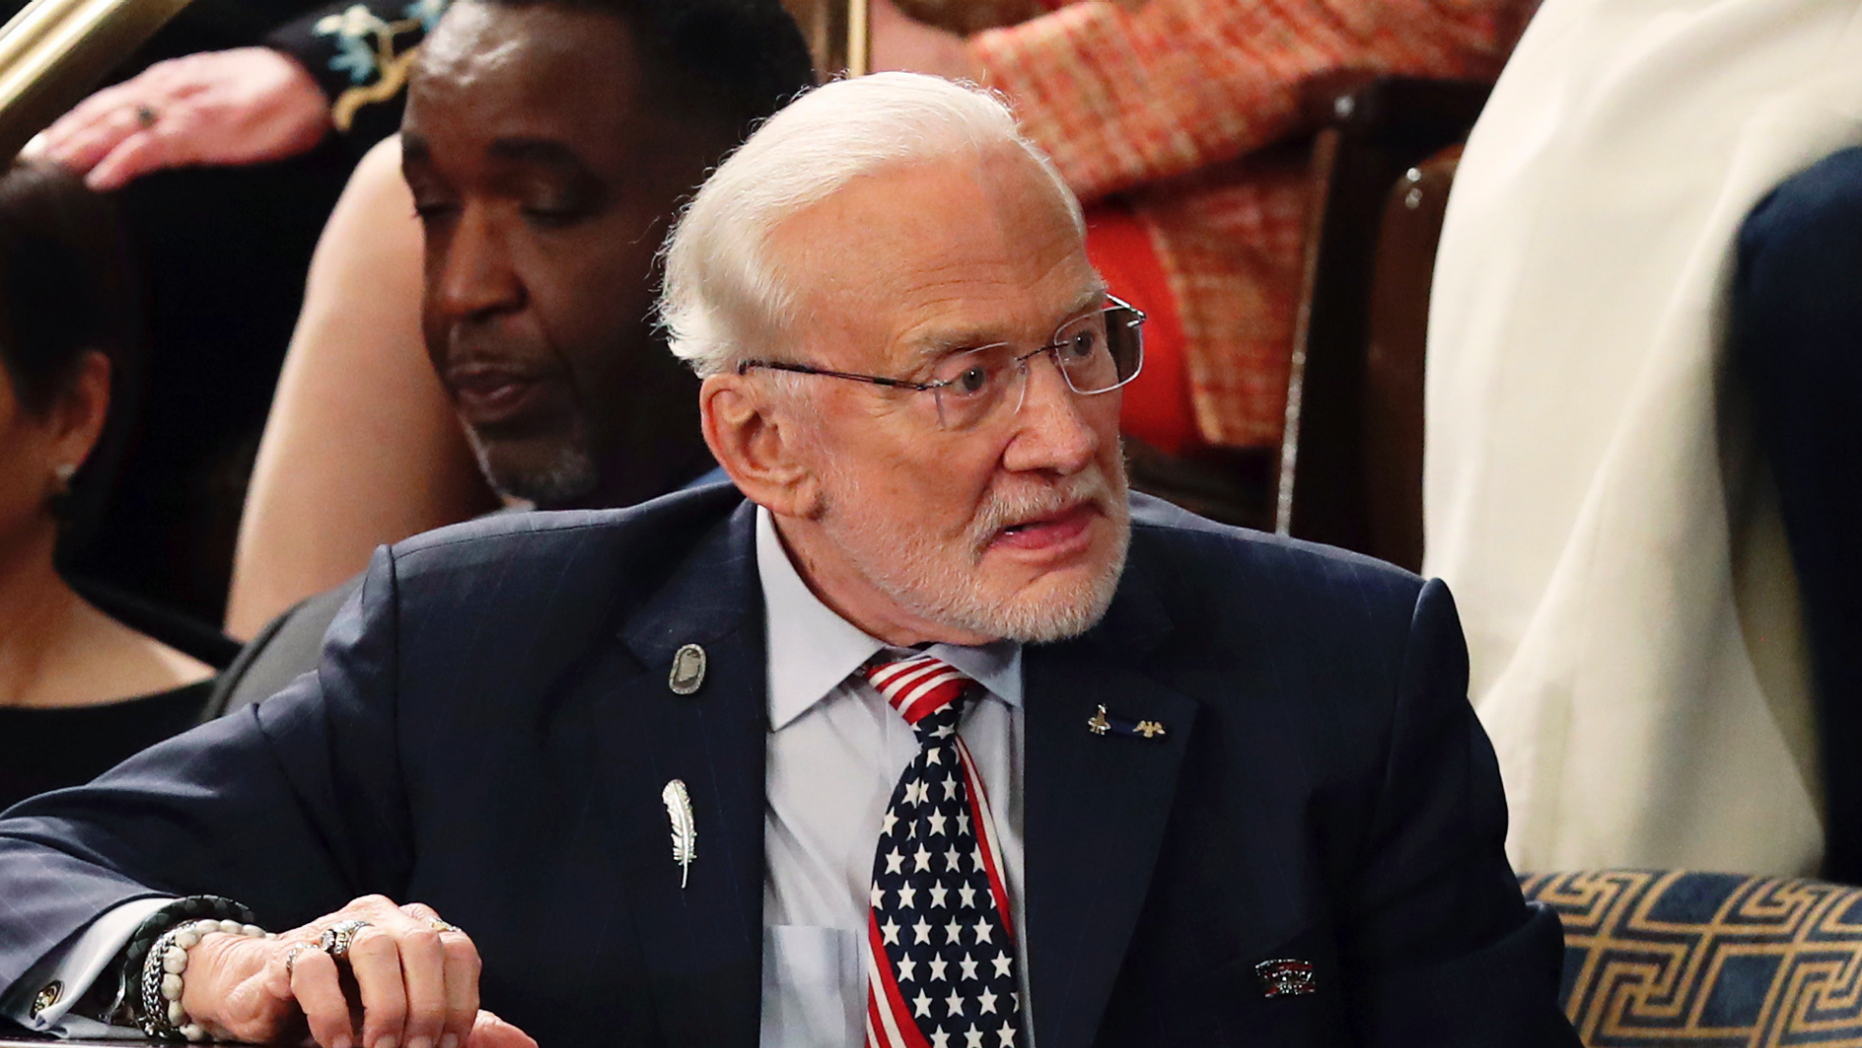 FILE - In this Feb. 5, 2019, file photo, astronaut Buzz Aldrin arrives for President Donald Trump's State of the Union address to a joint session of Congress on Capitol Hill in Washington. A legal fight between Aldrin and his adult children over whether the former astronaut was competent to manage his affairs ended Wednesday, March 13, averting a messy, intrafamily squabble from hanging over celebrations this summer of the 50th anniversary of his Apollo 11 moon-walking. (AP Photo/Andrew Harnik, File)